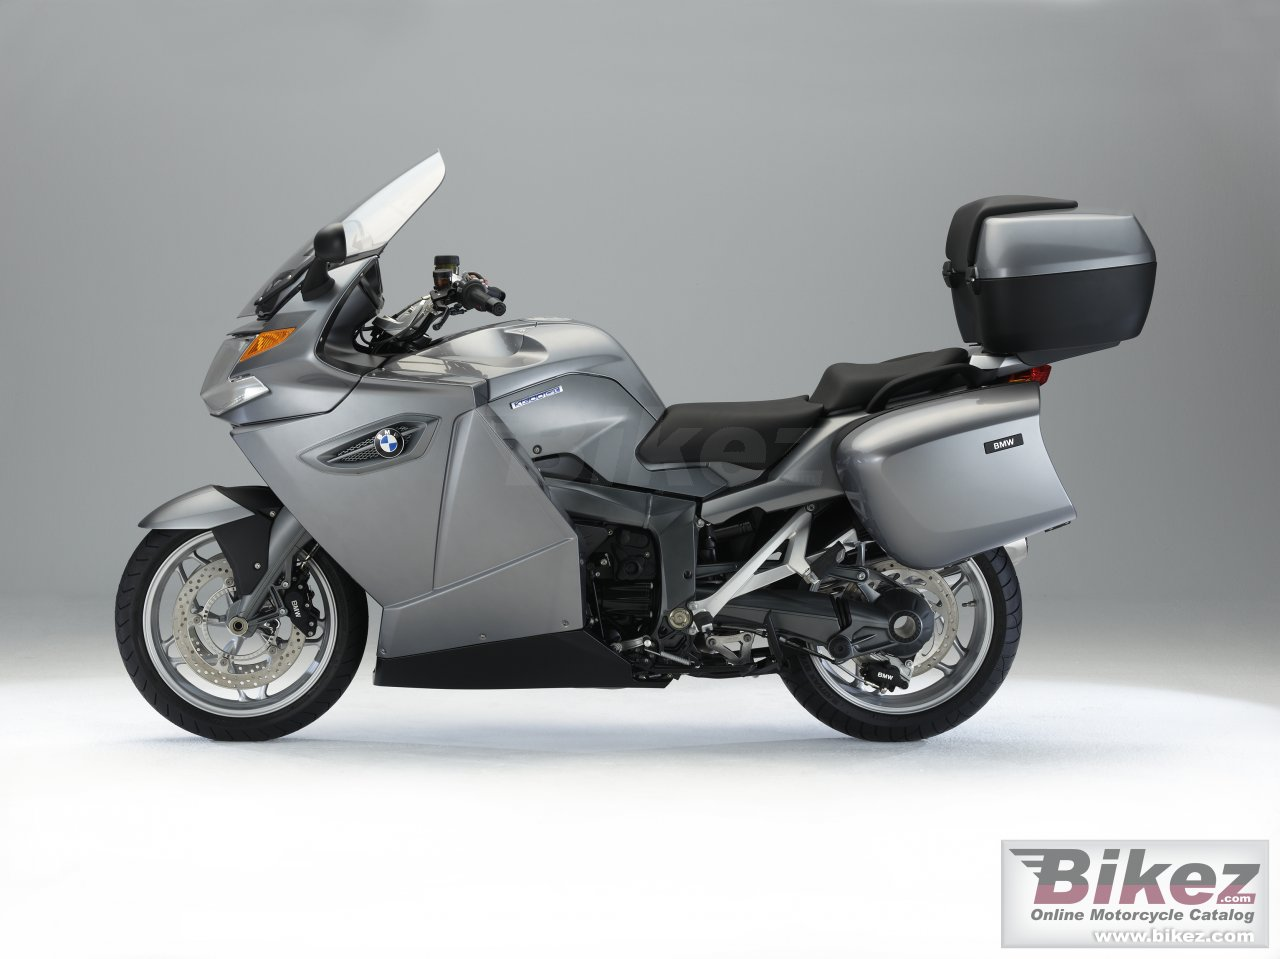 Big BMW k 1300 gt picture and wallpaper from Bikez.com